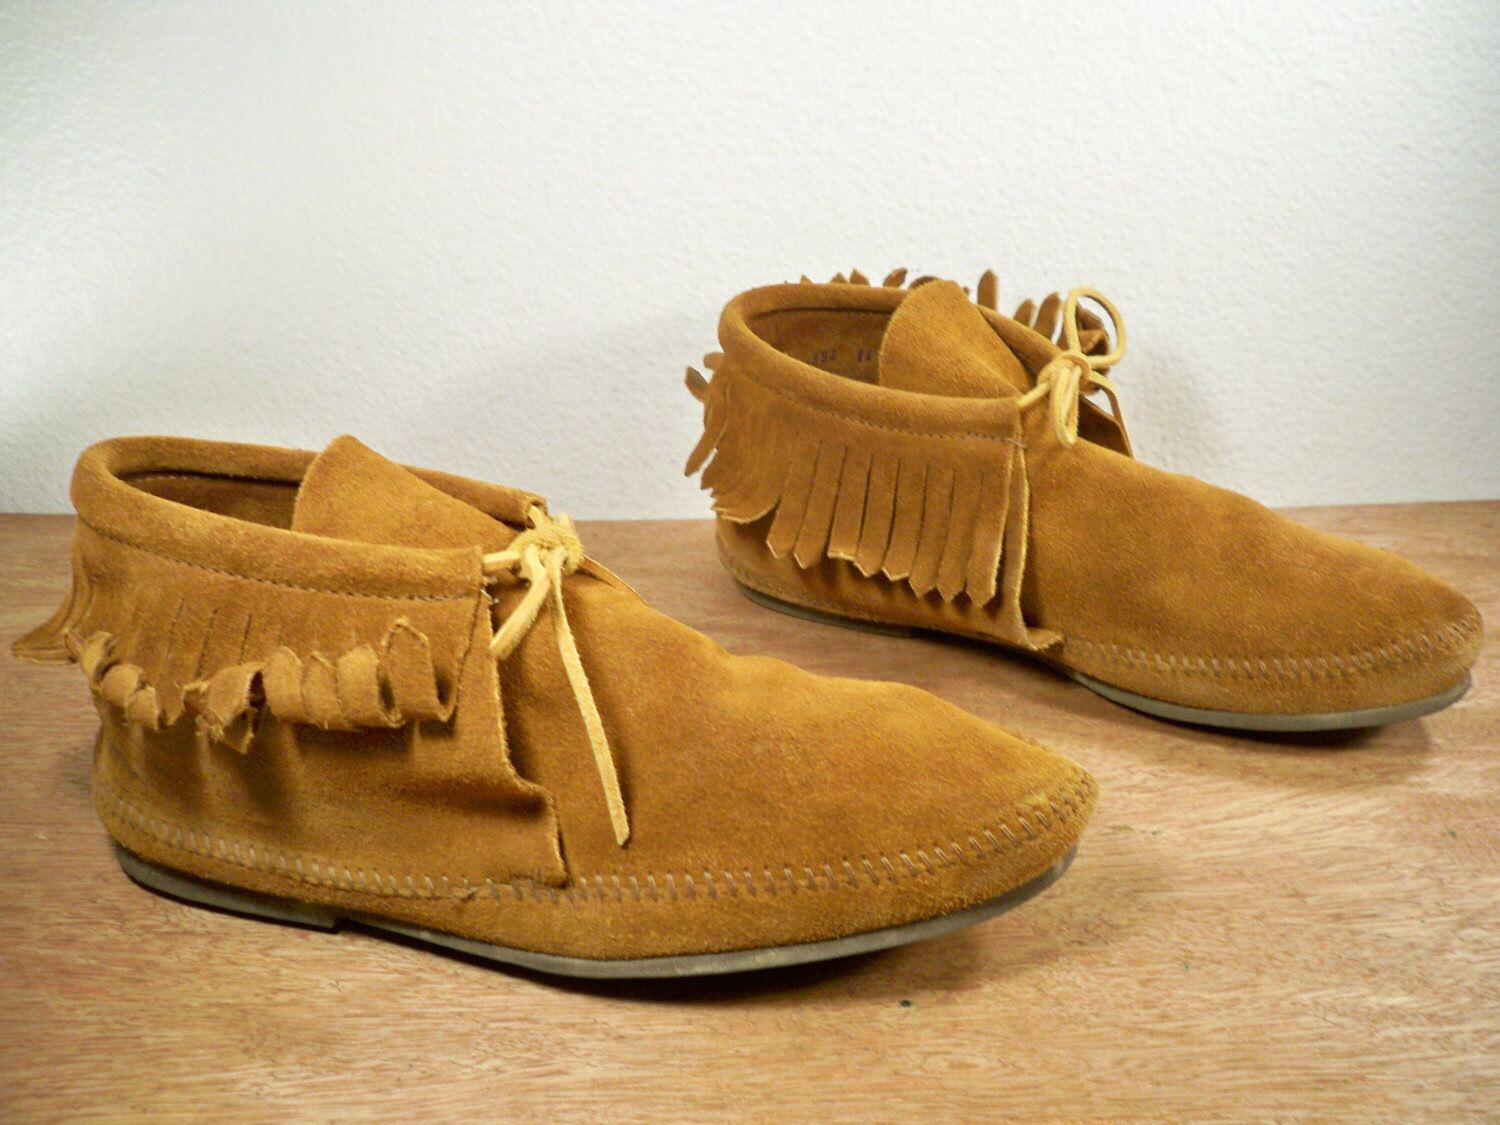 Moccasins leather shoes